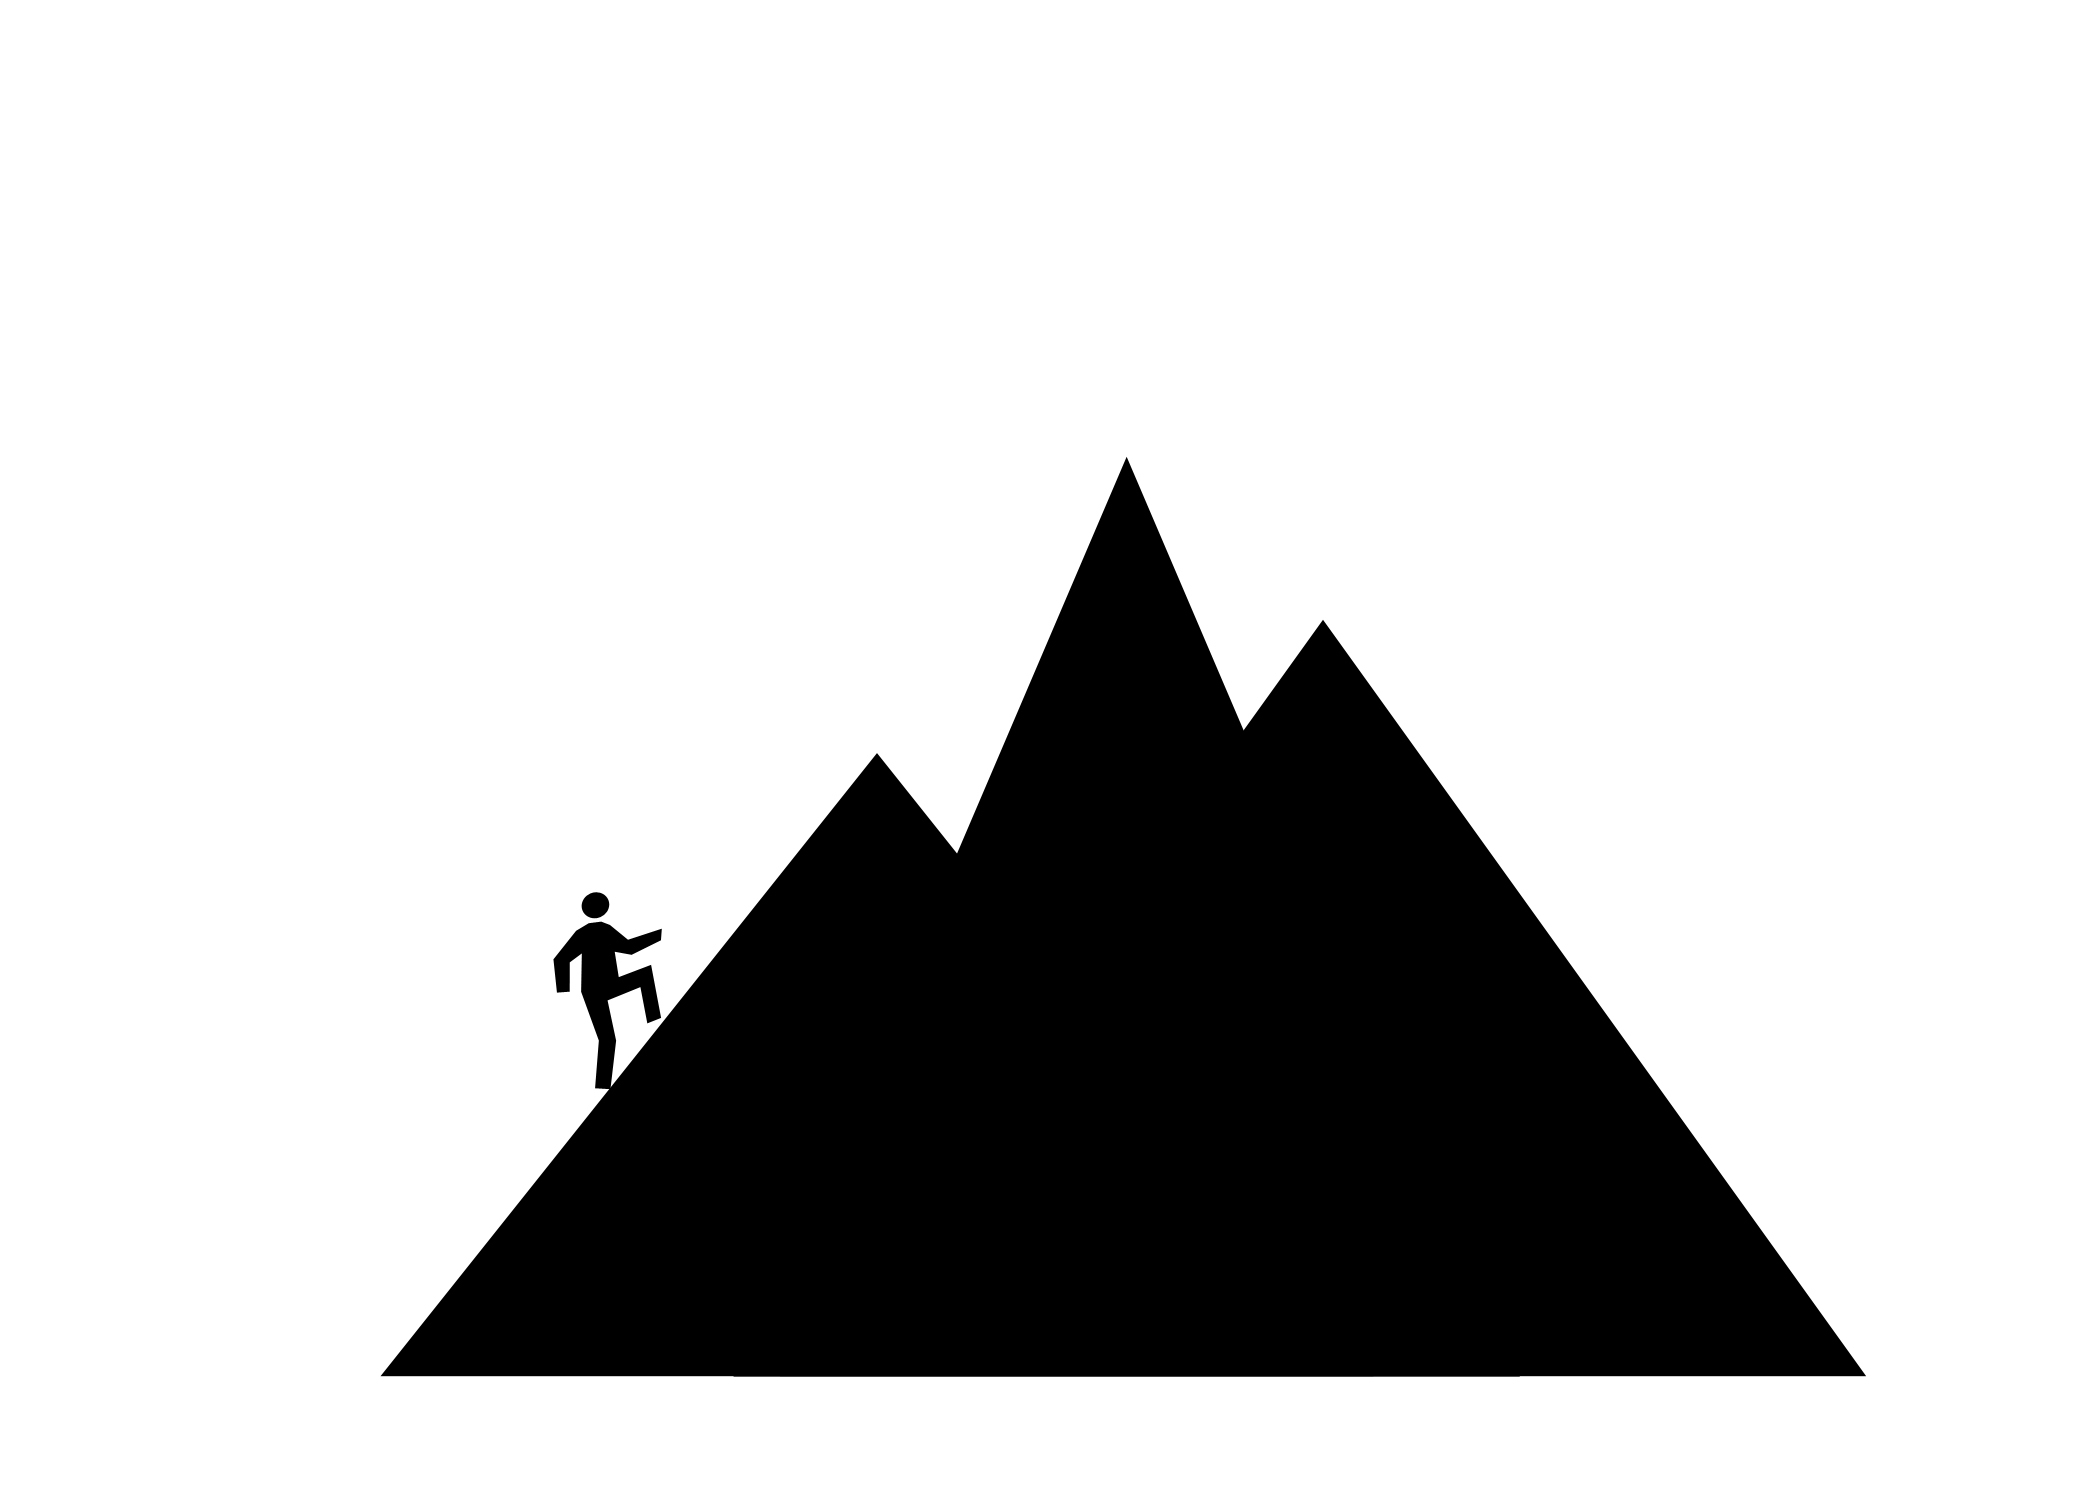 Free cliparts climbing download. Mountains clipart mountaineering